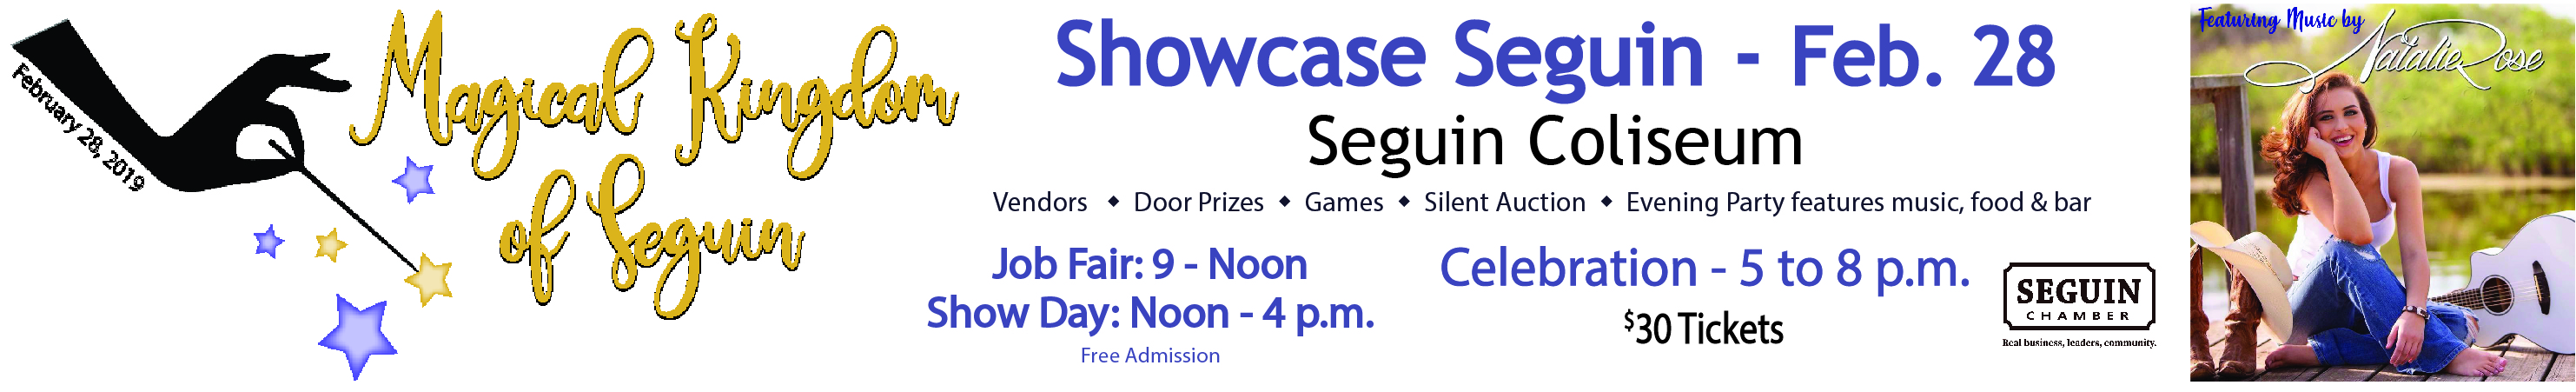 Job Fair at Showcase Seguin